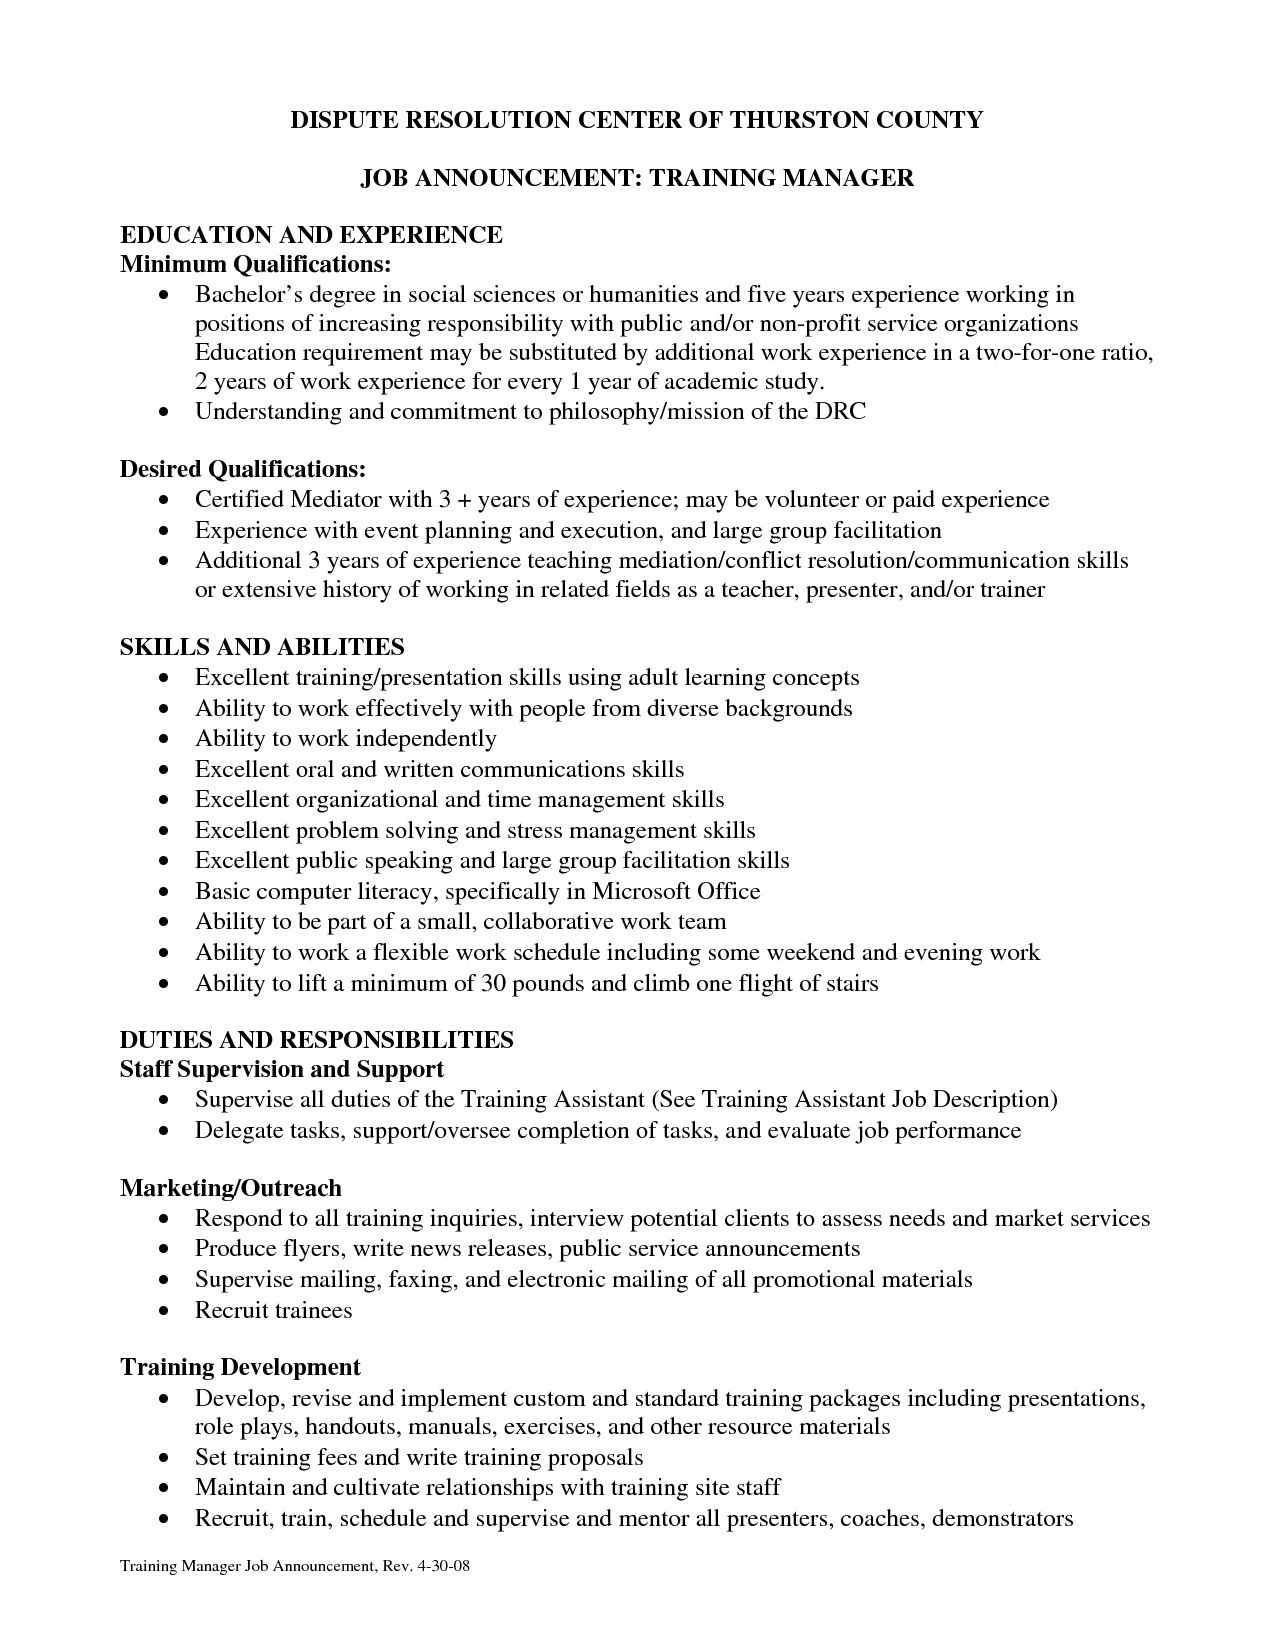 training coordinator resume cover letter training coordinator training coordinator resume cover letter training coordinator resume cover letter we provide as reference to